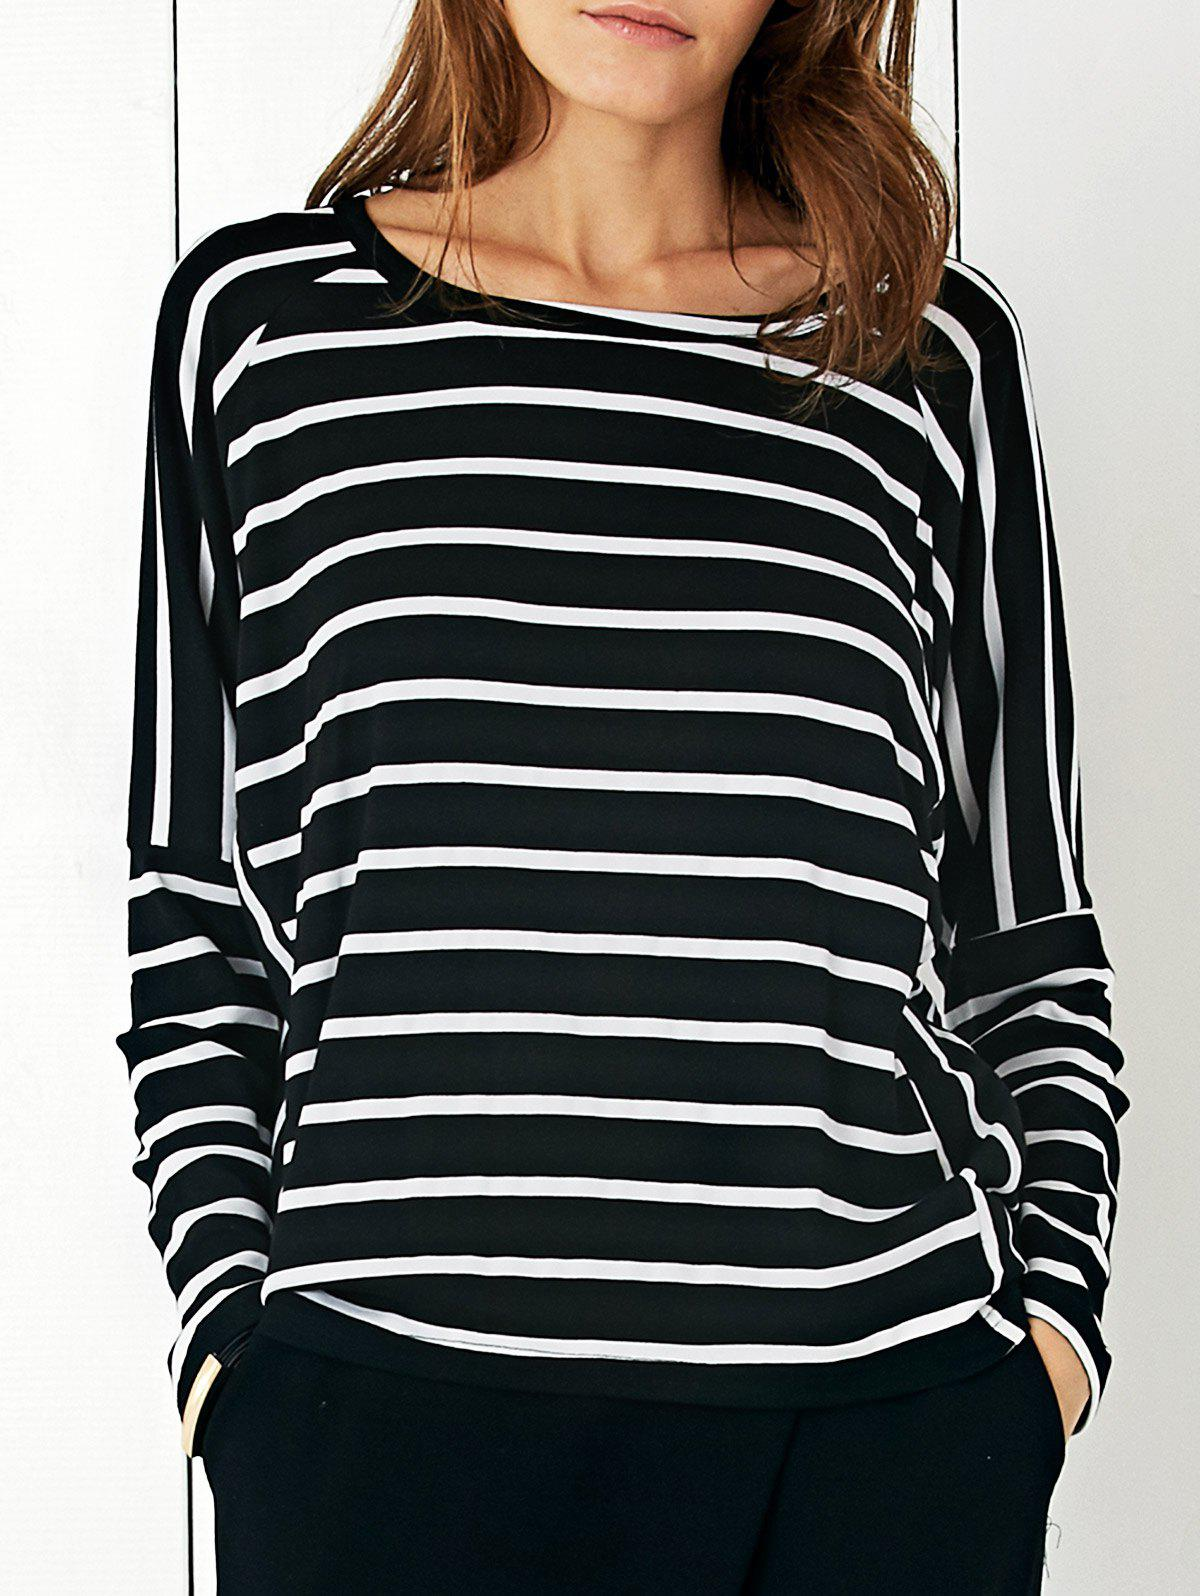 Simple Women's Striped Loose T-Shirt